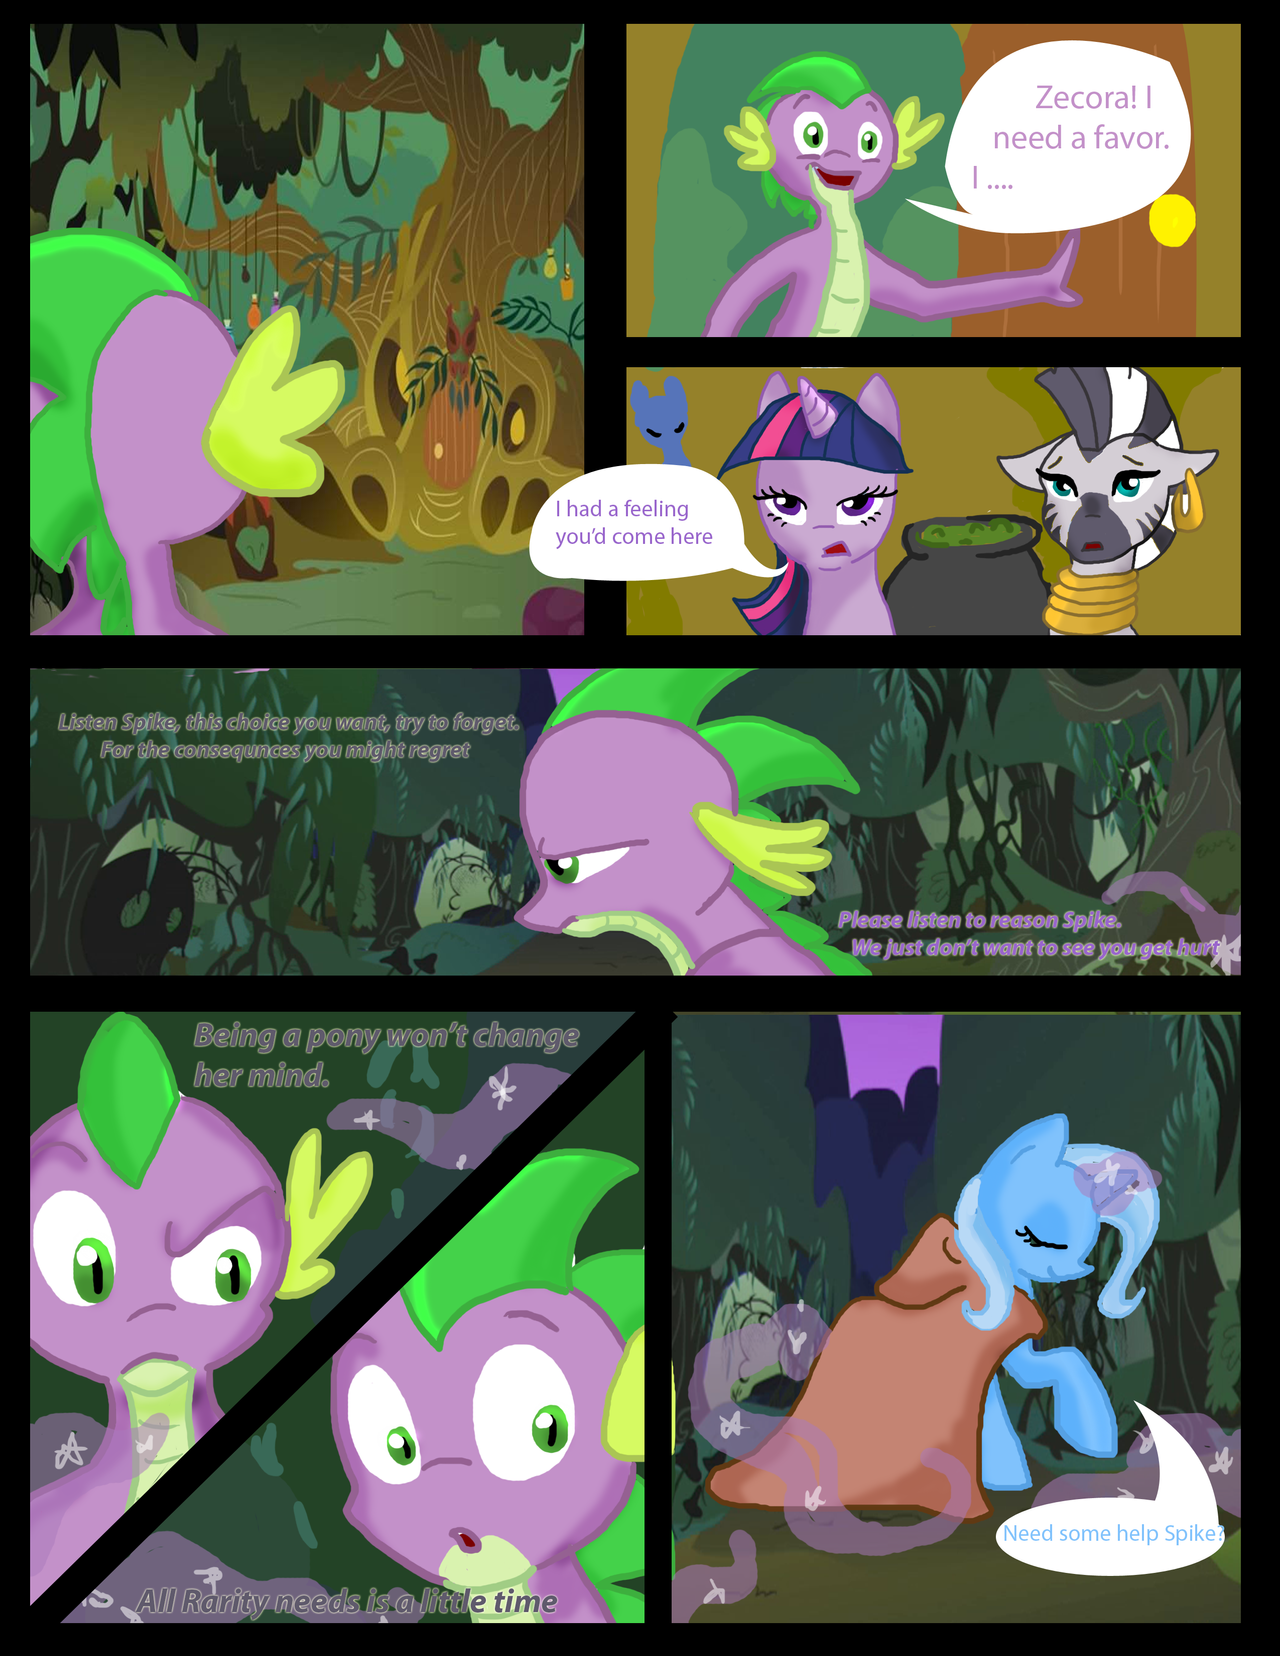 13. No help from Zecora either by sweetchiomlp